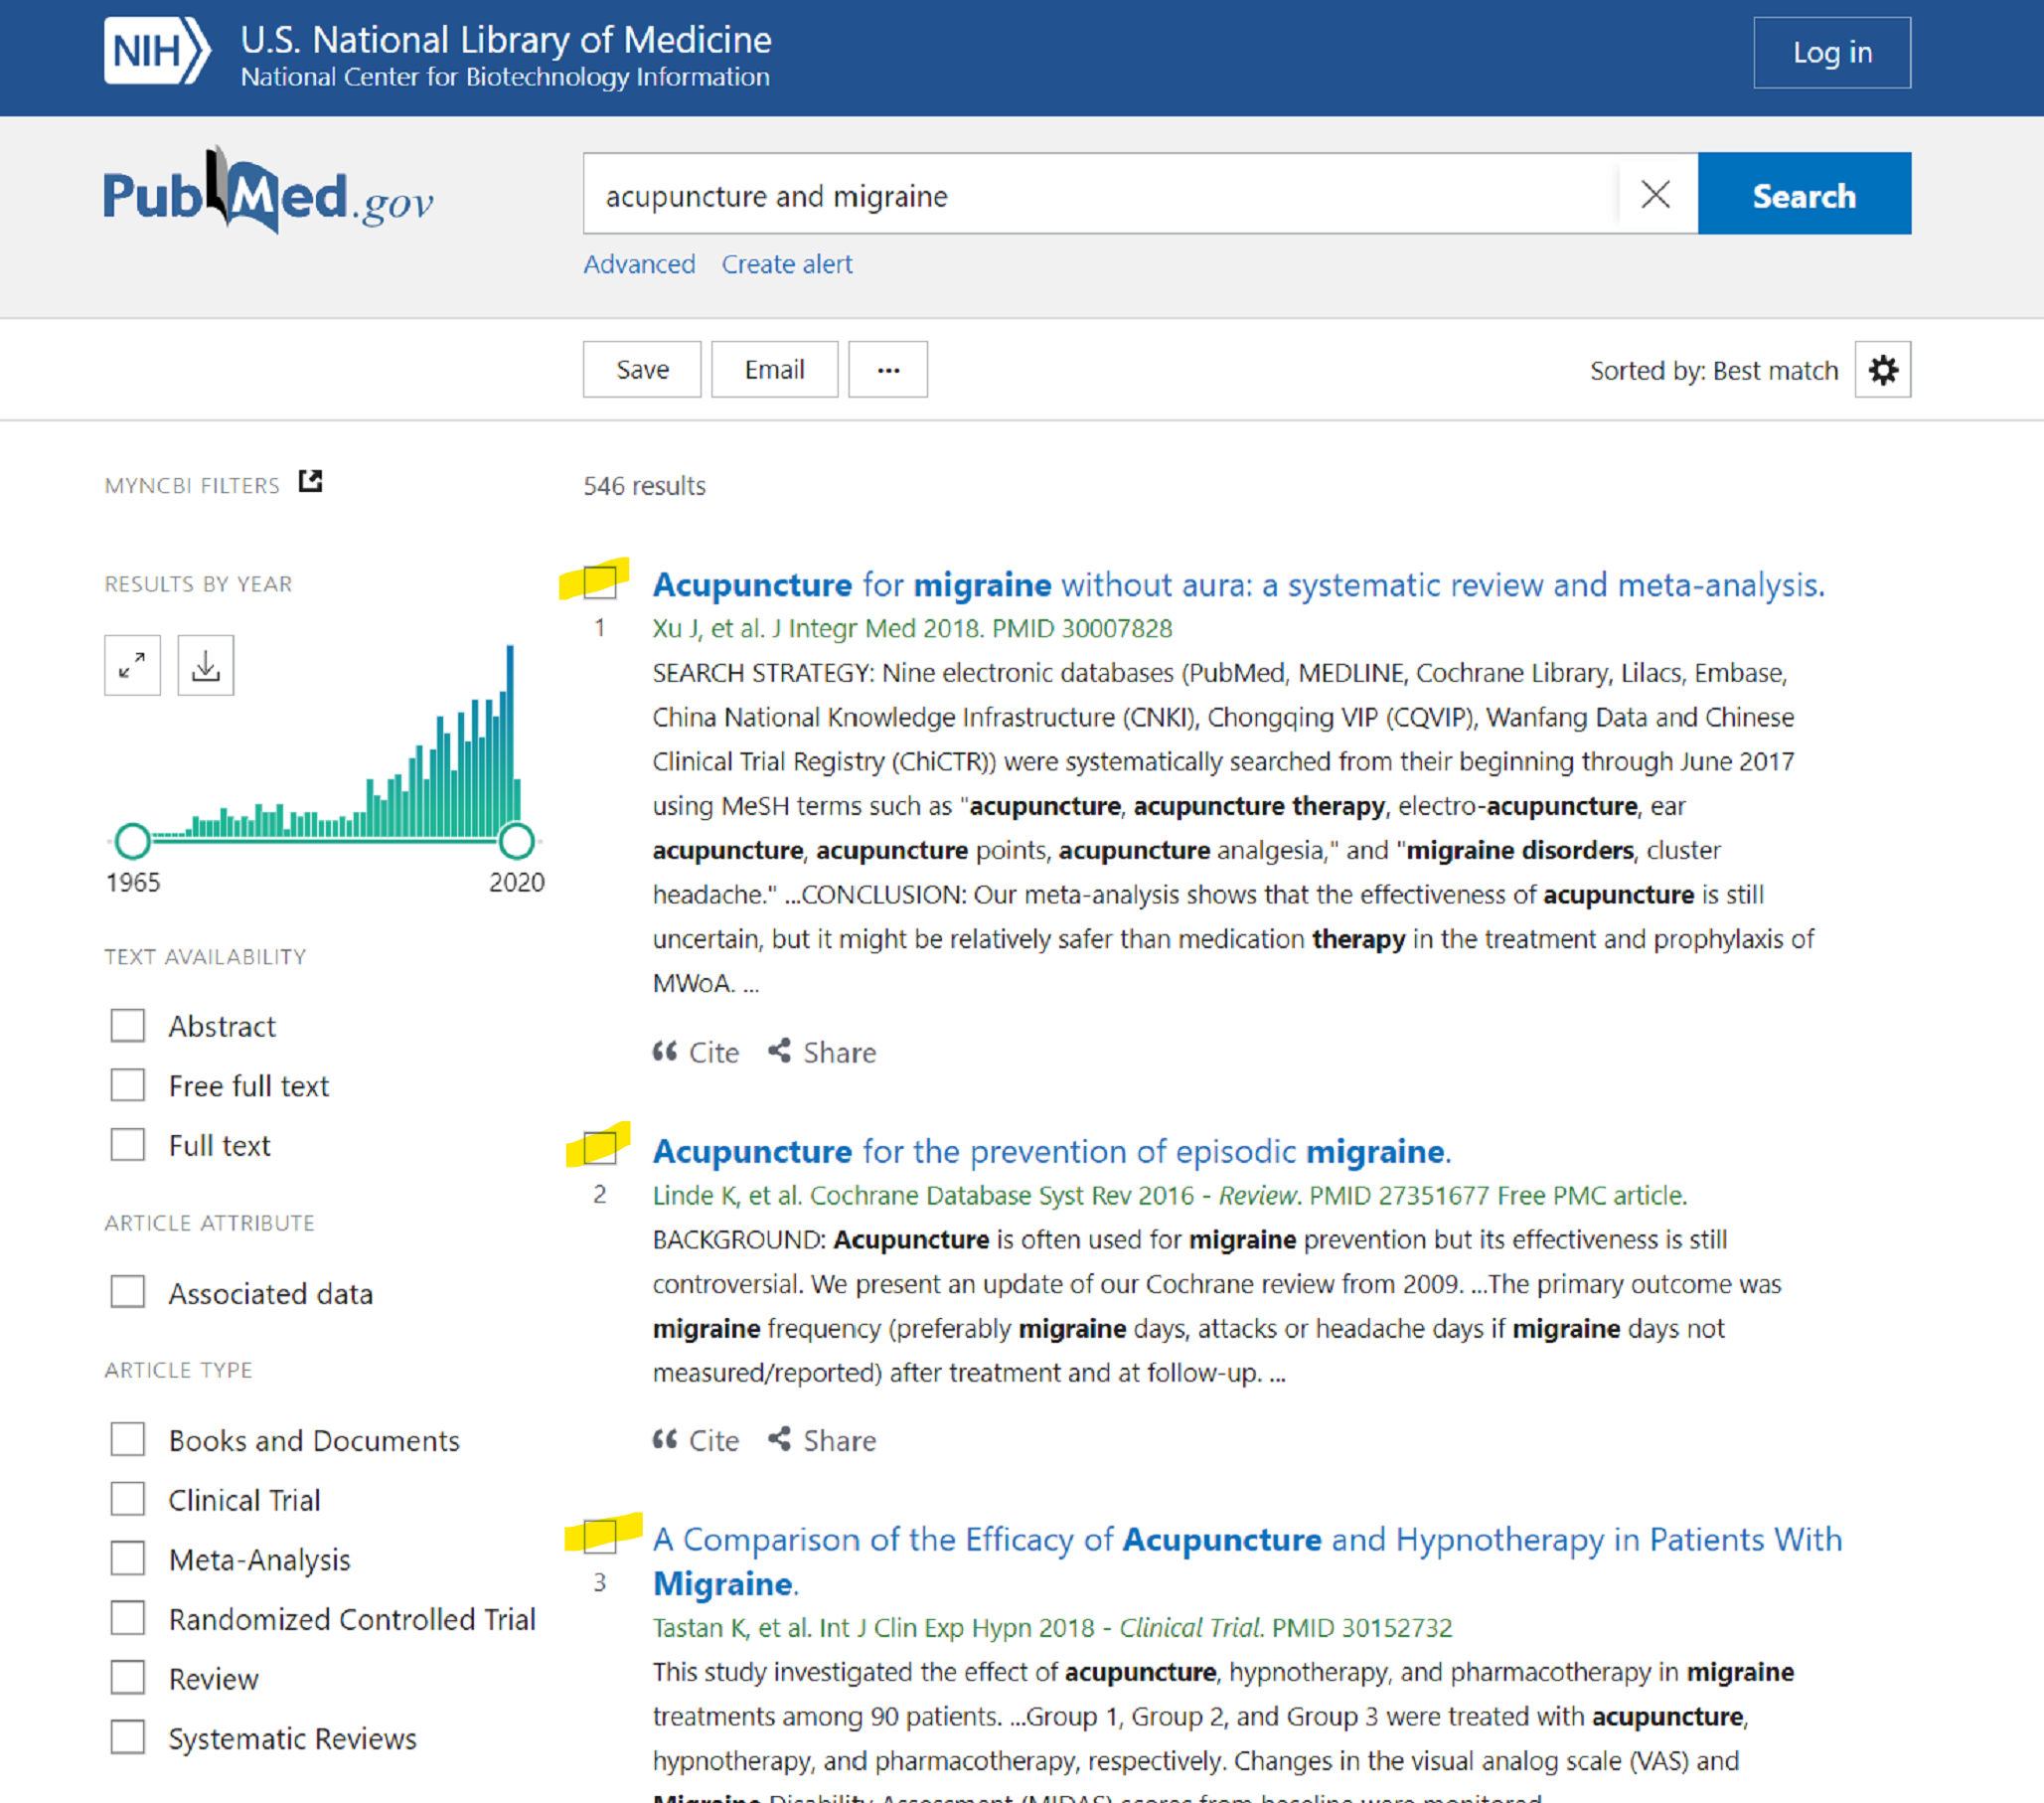 Select individual articles in PubMed search results